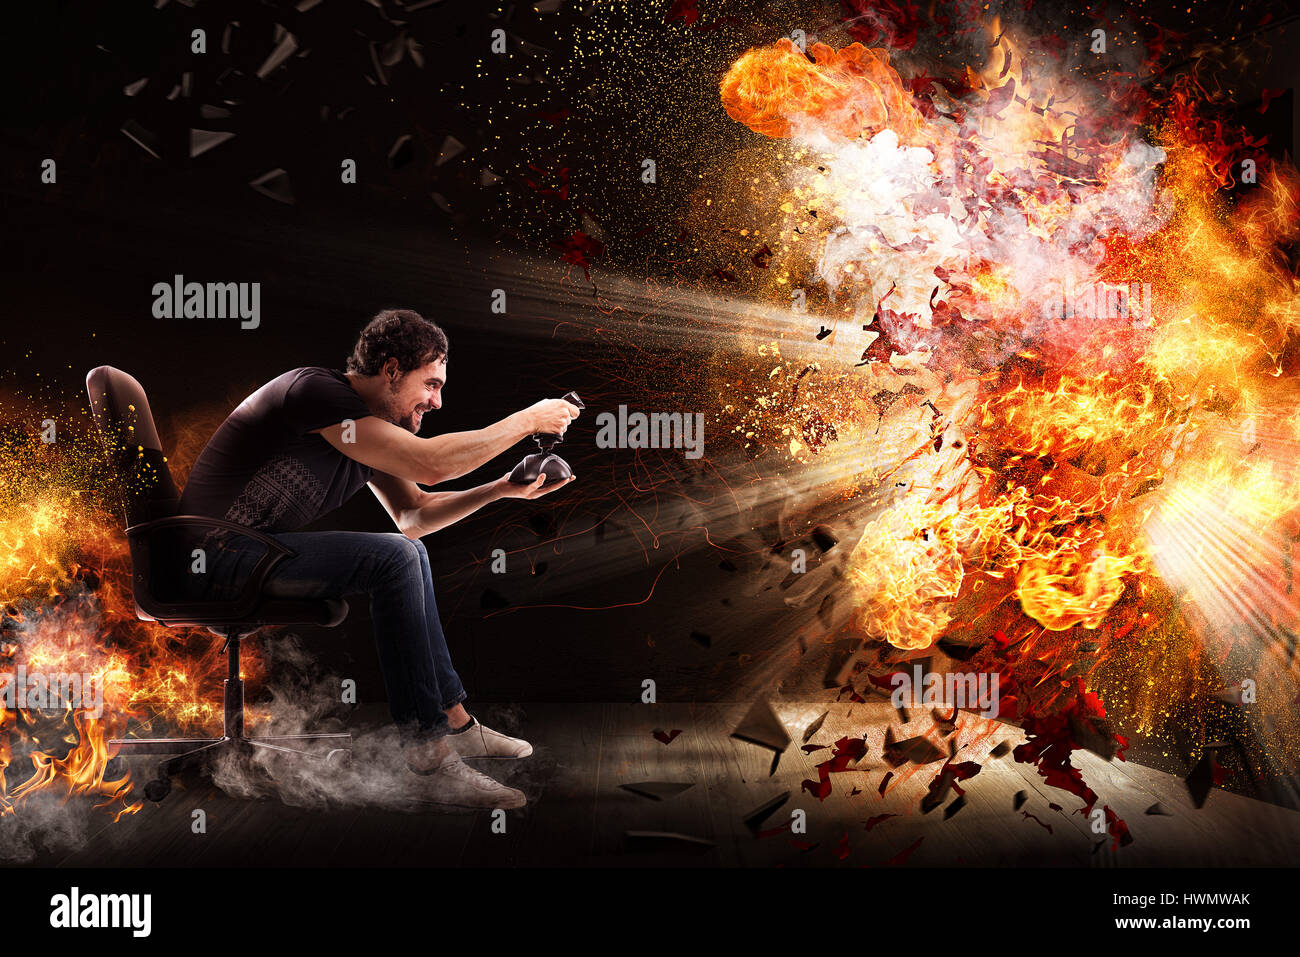 World of videogames - Stock Image